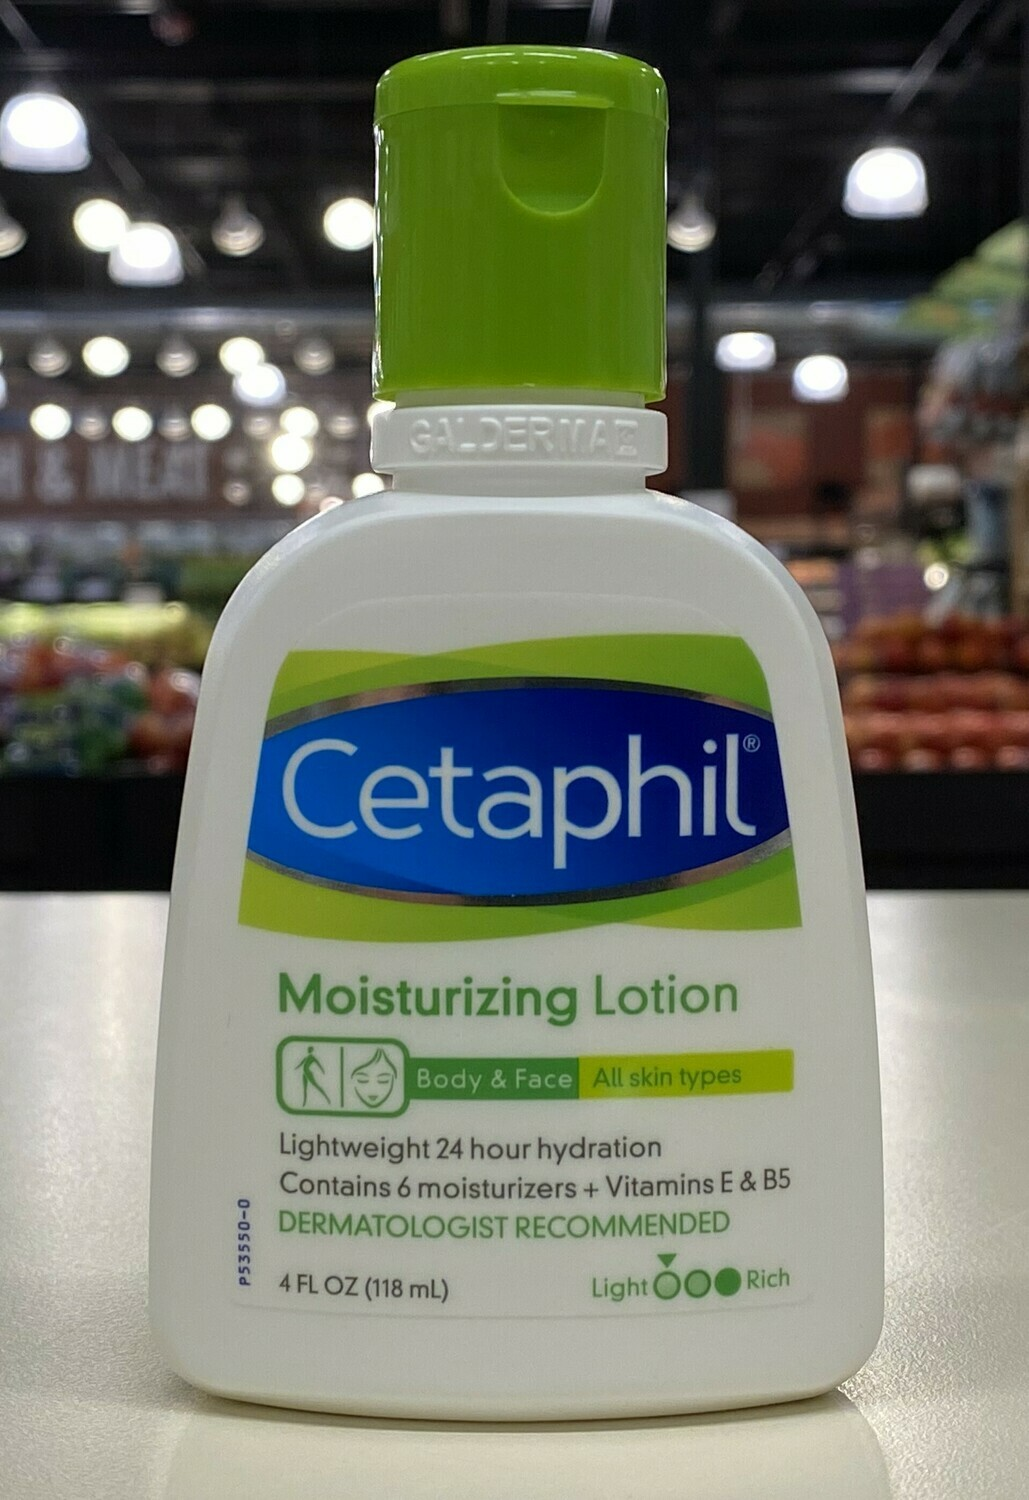 Cetaphil Moisturizing Lotion 4 FL OZ